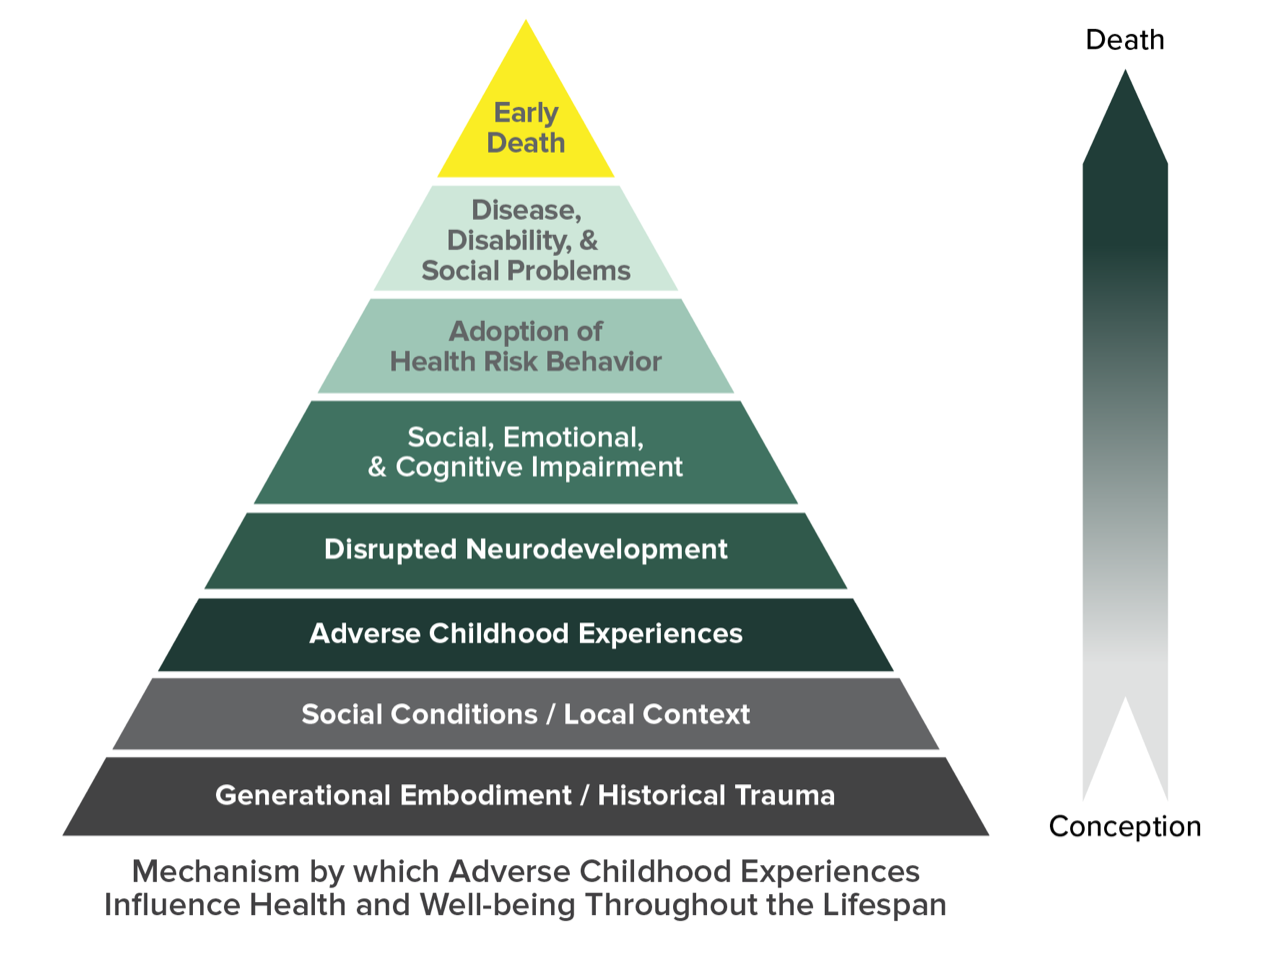 ACE Pyramid represents the conceptual framework for the ACE Study